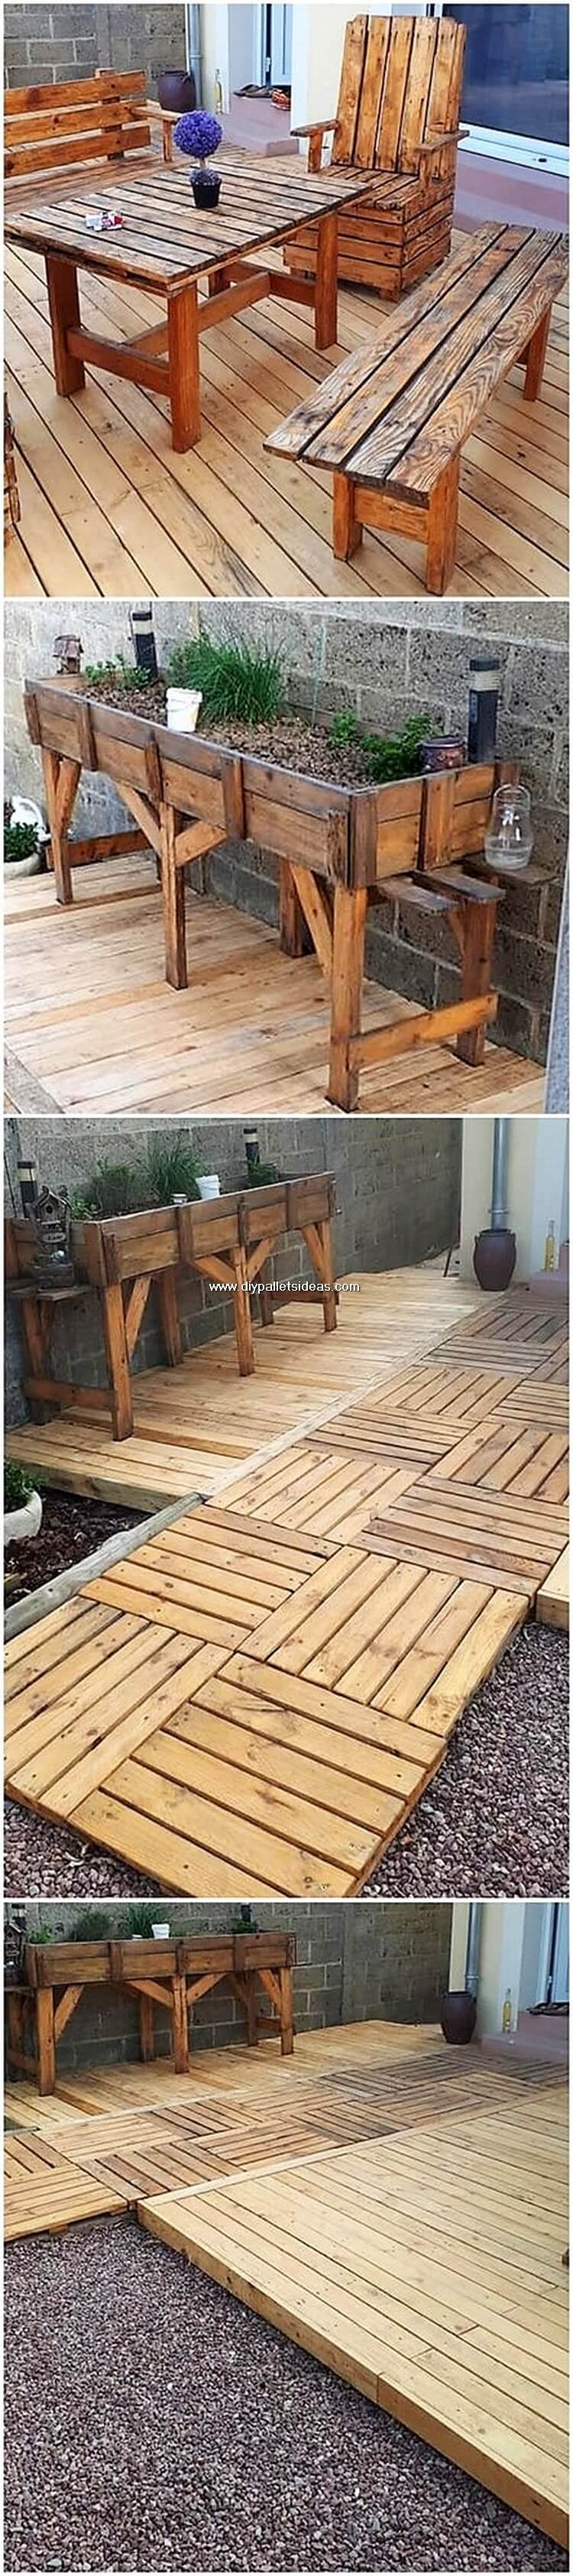 Pallet Garden Furniture and Terrace